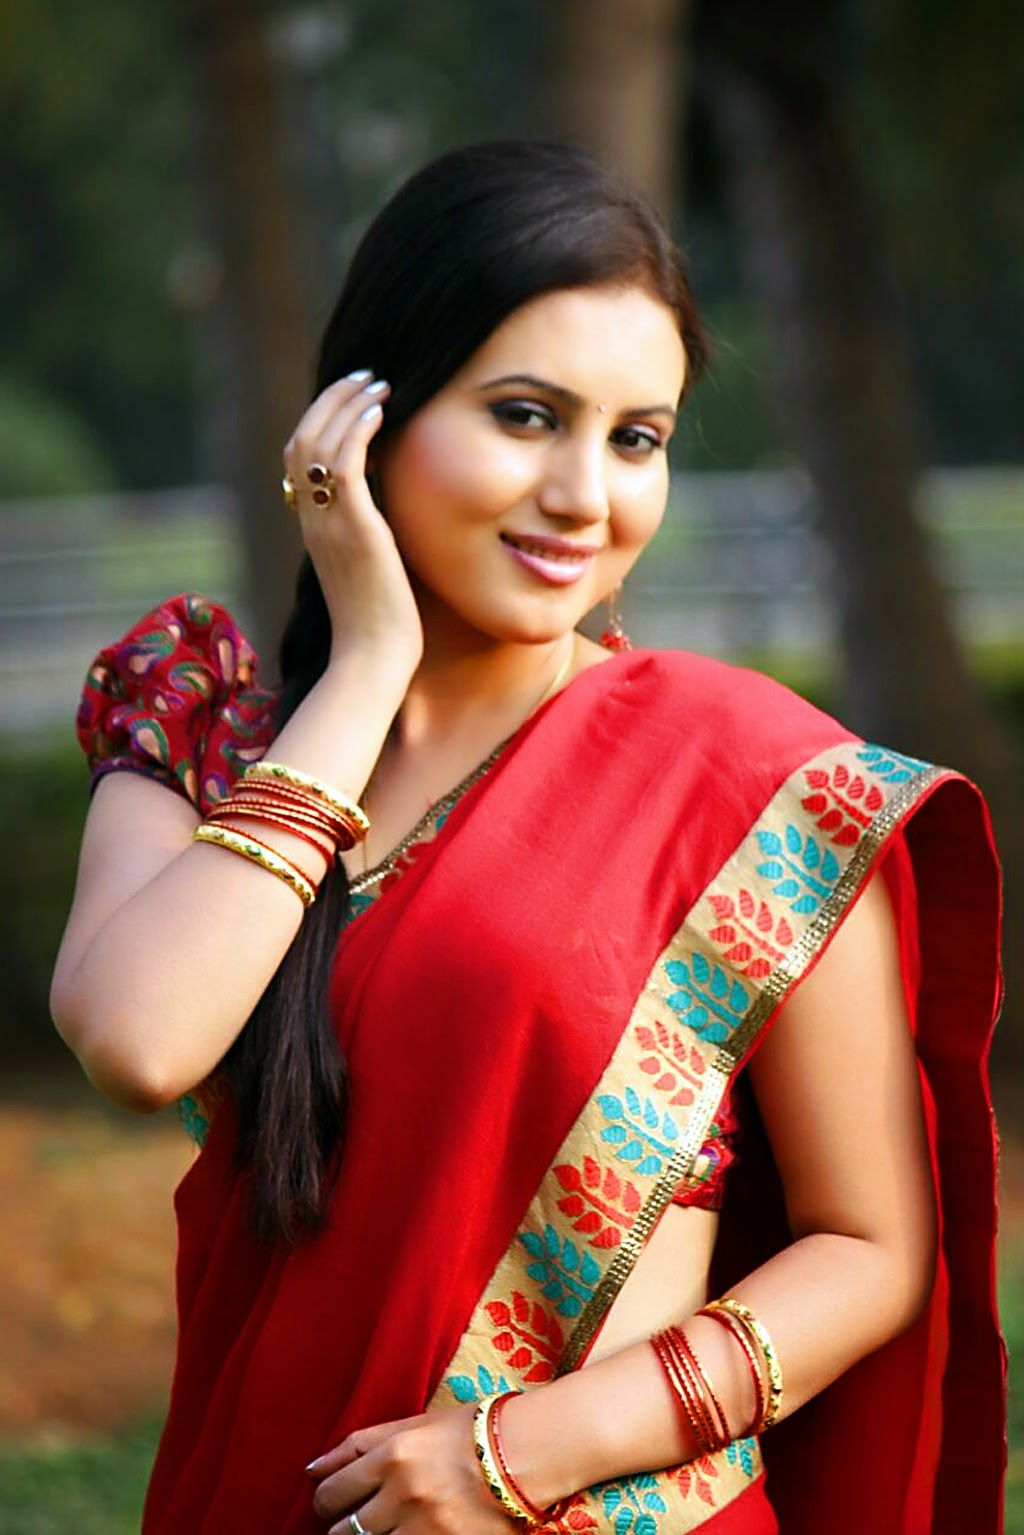 Beautiful Indian Girl in Saree Wallpapers 2017 ~ F7view